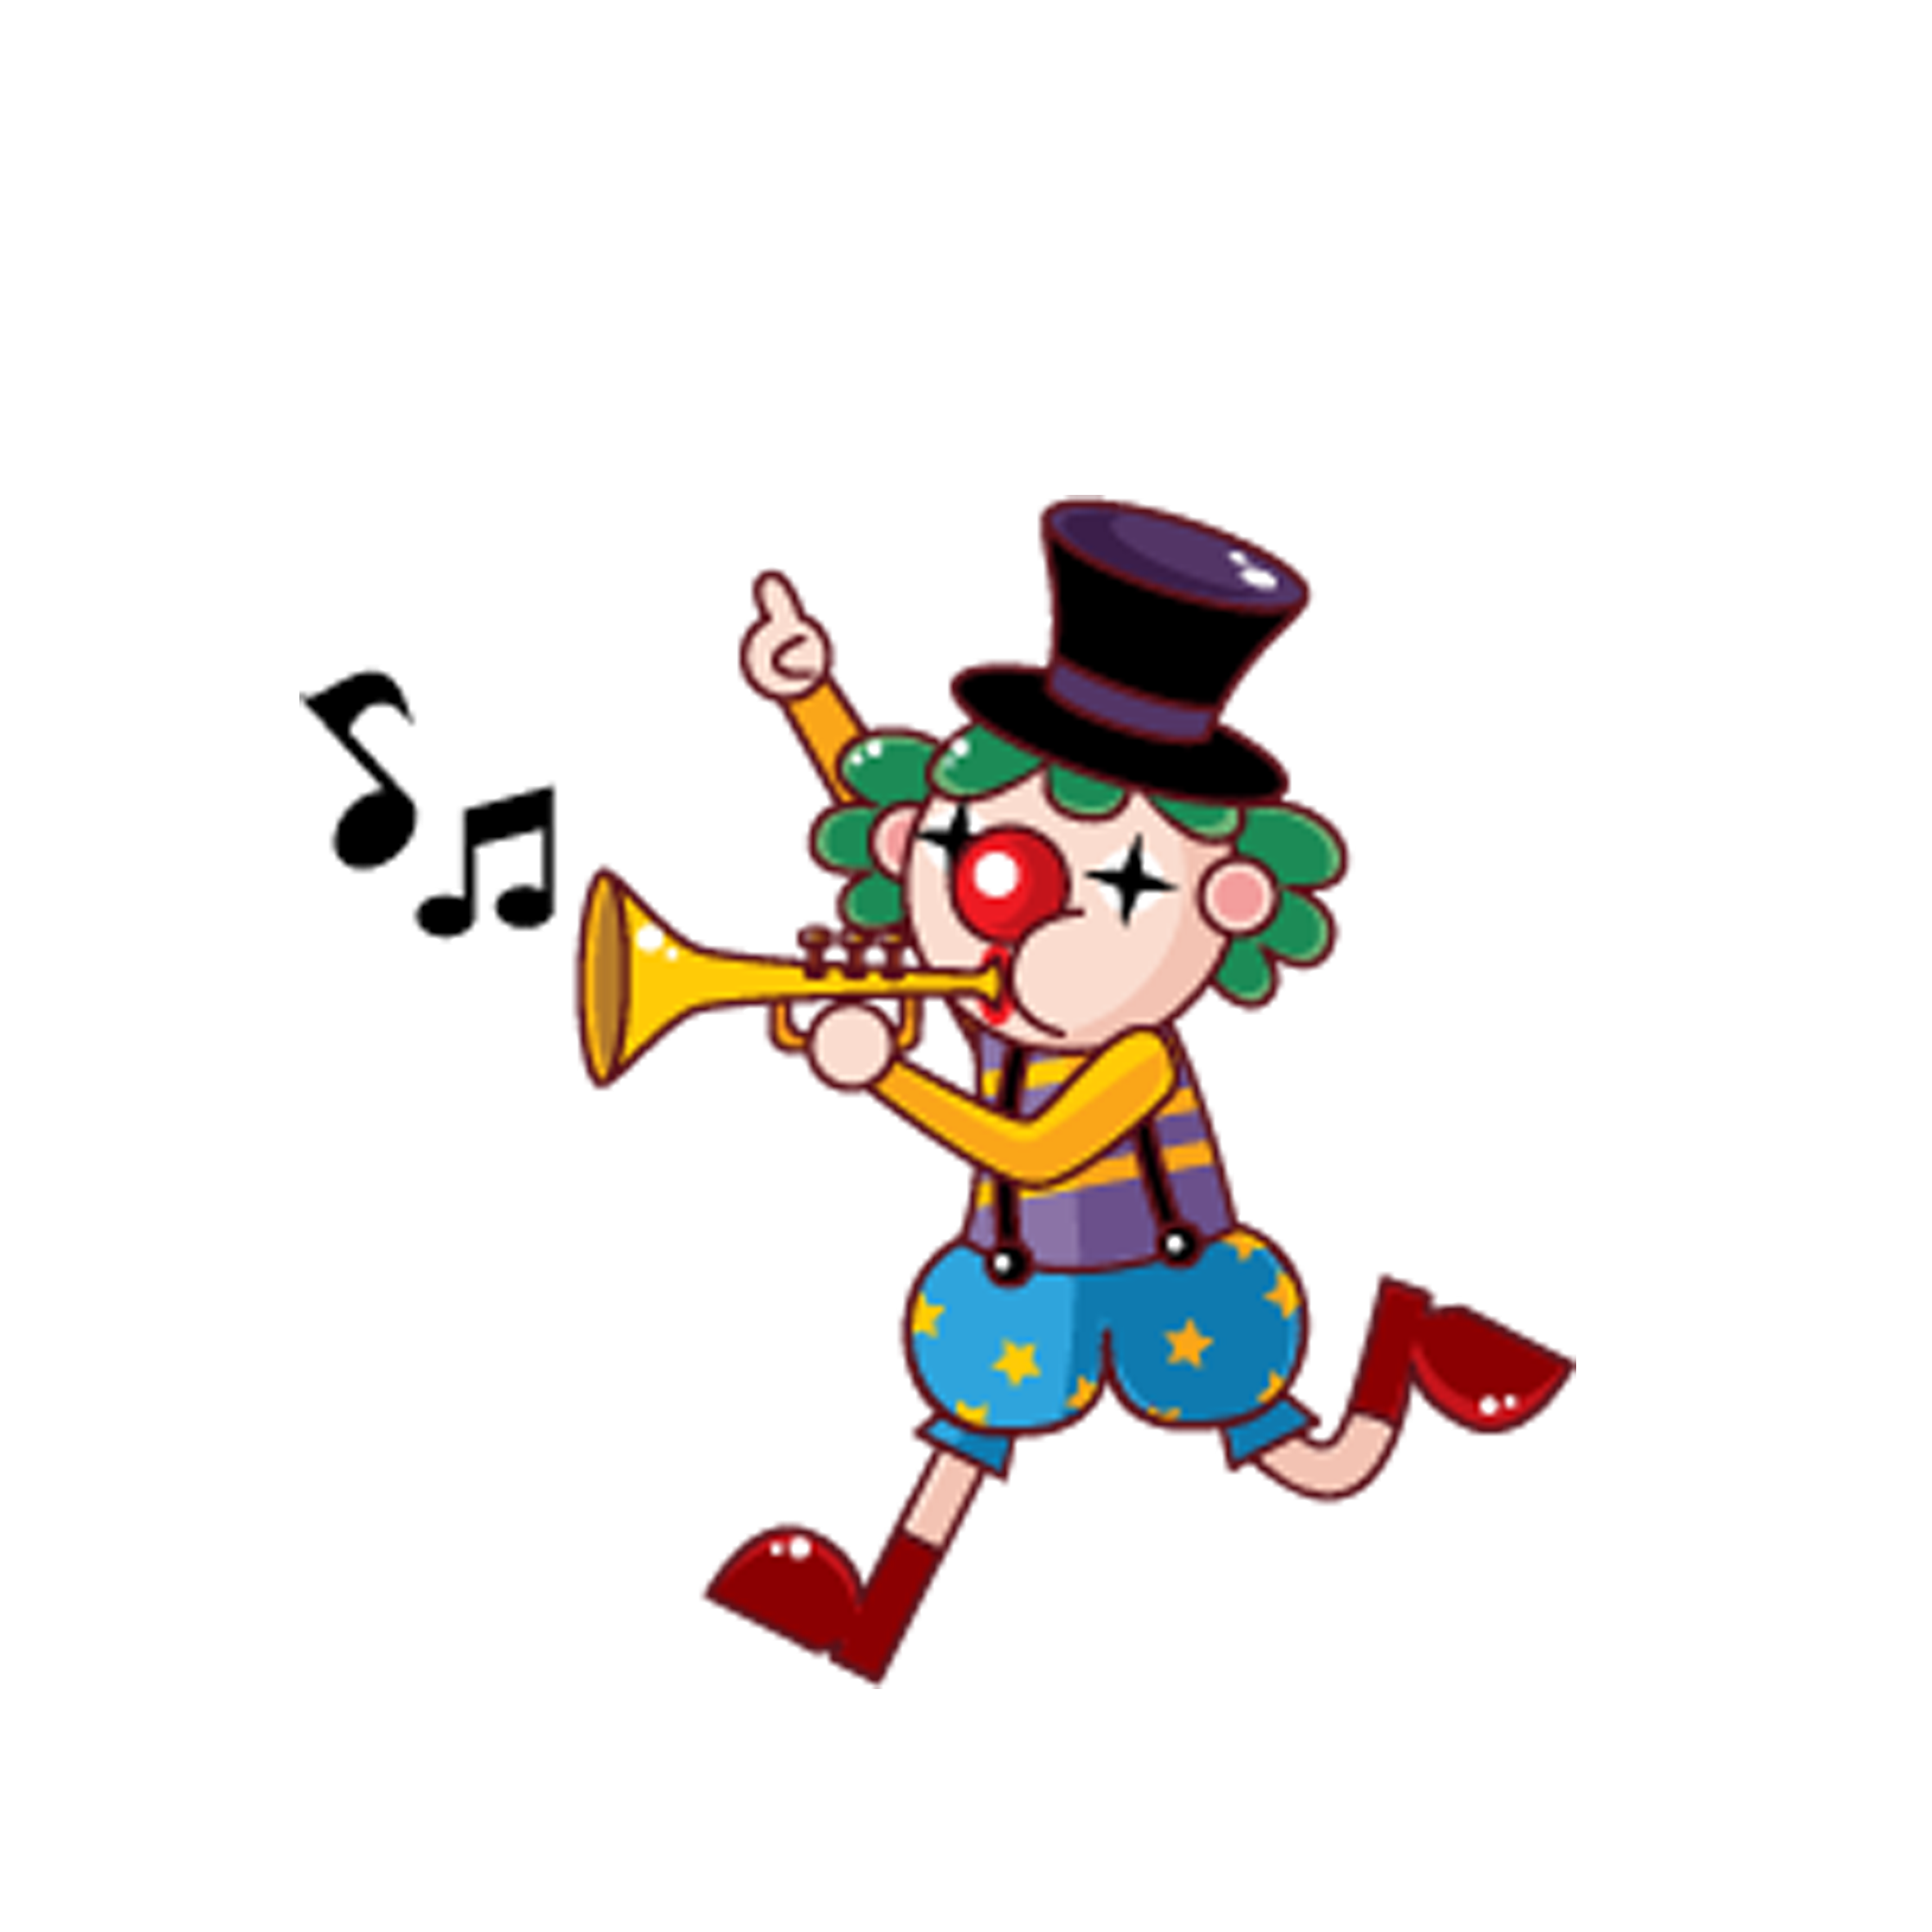 Joker clipart cute circus. Images gallery for free